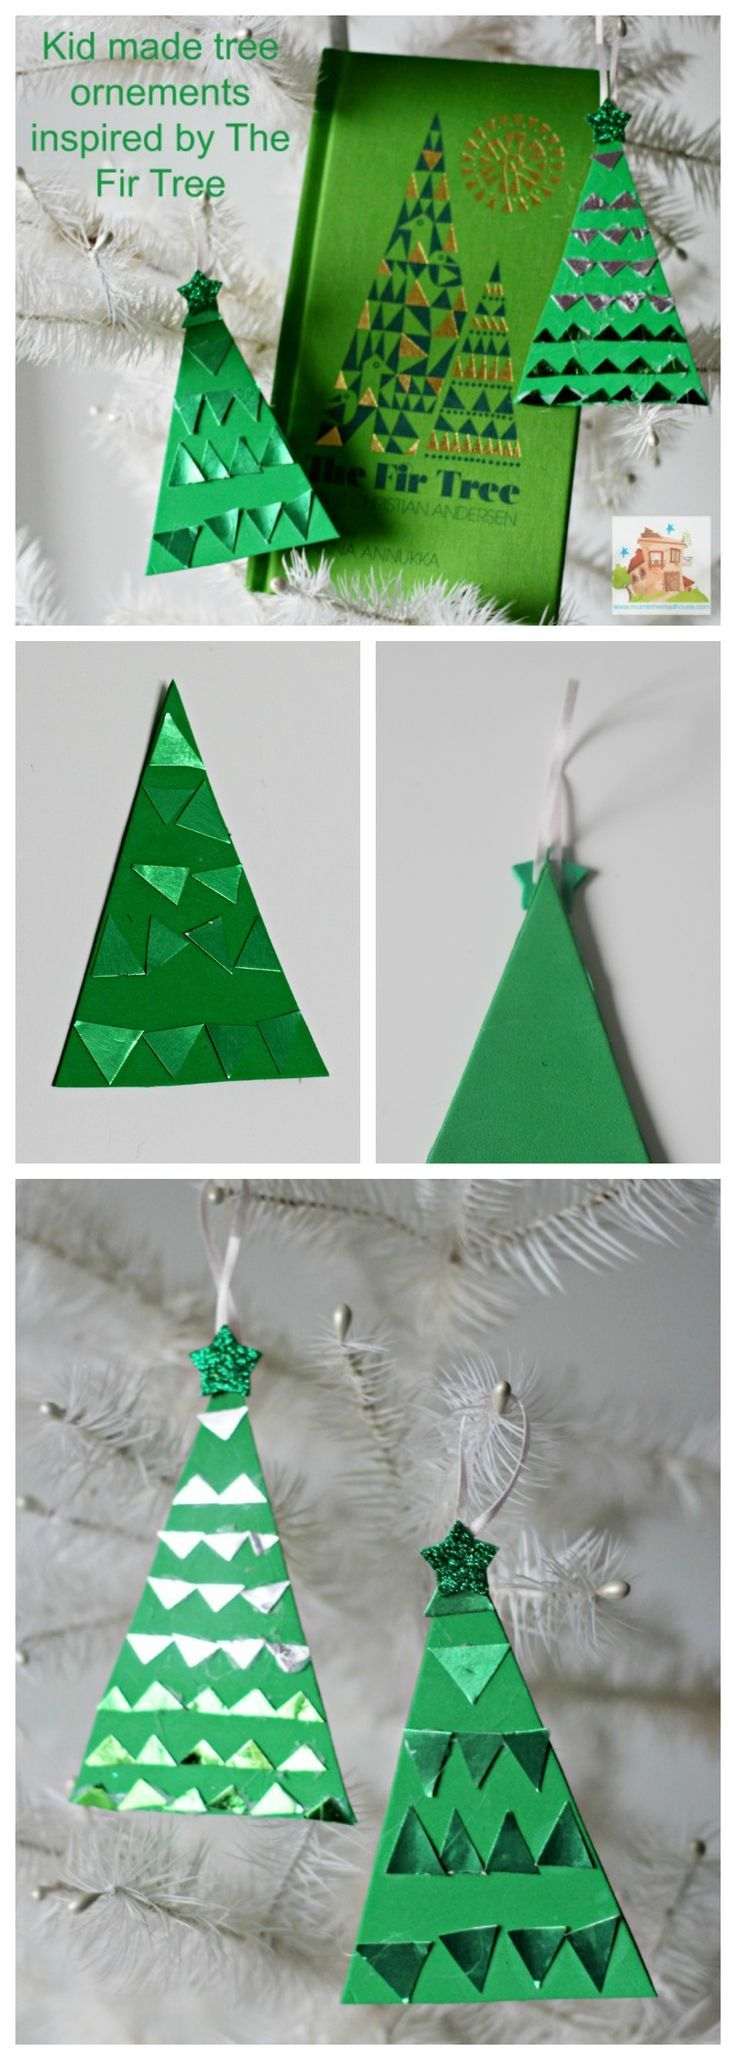 Kid made Christmas tree decorations inspired by The Fir Tree. These are so simple and easy to make and look fab